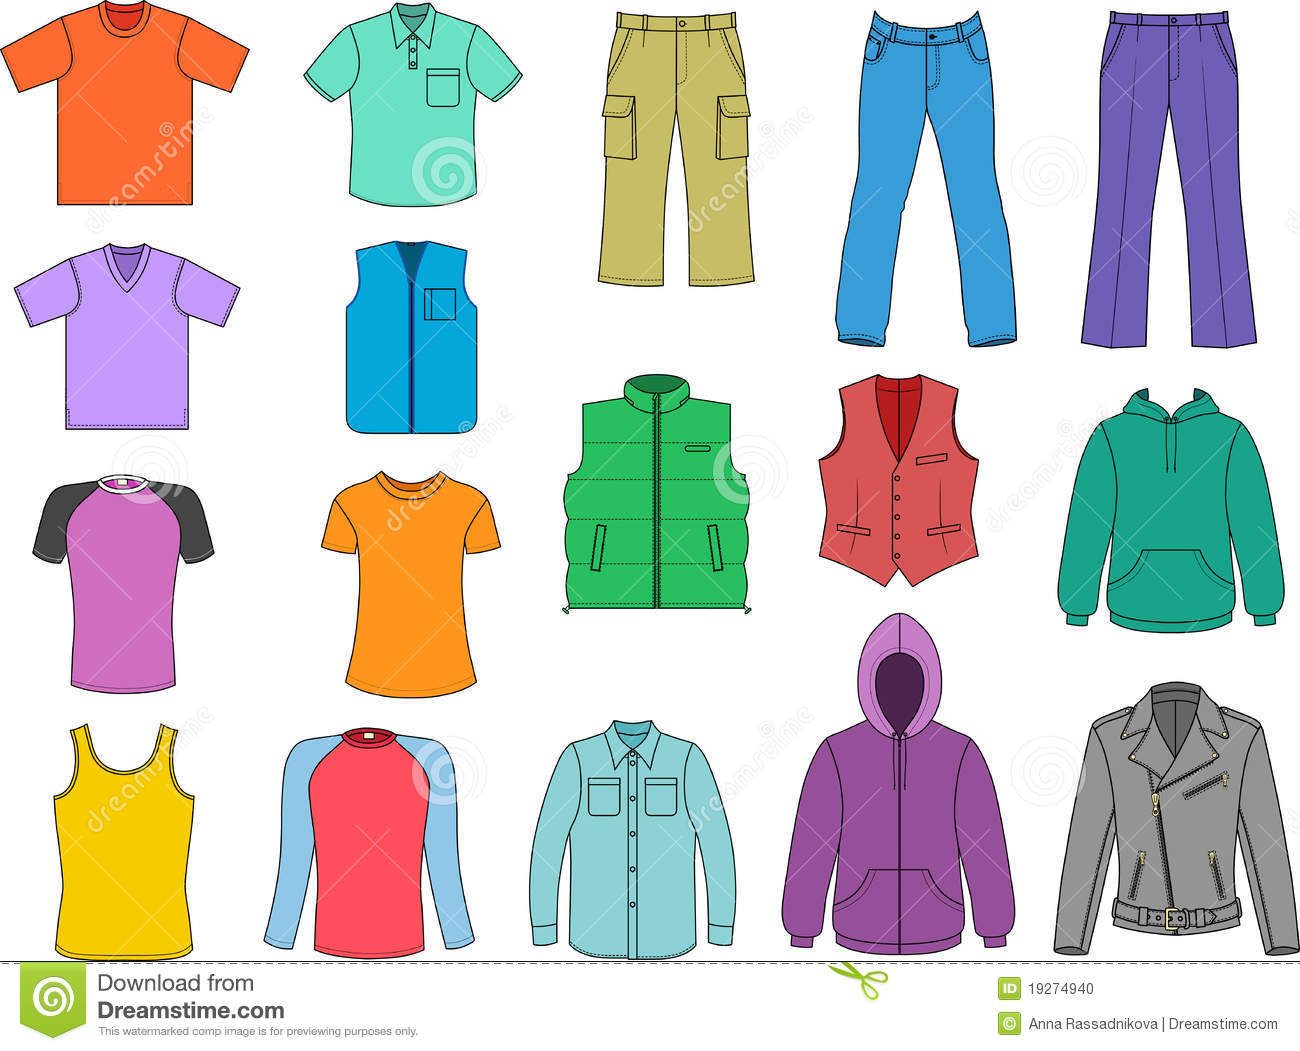 clothing clip art #8